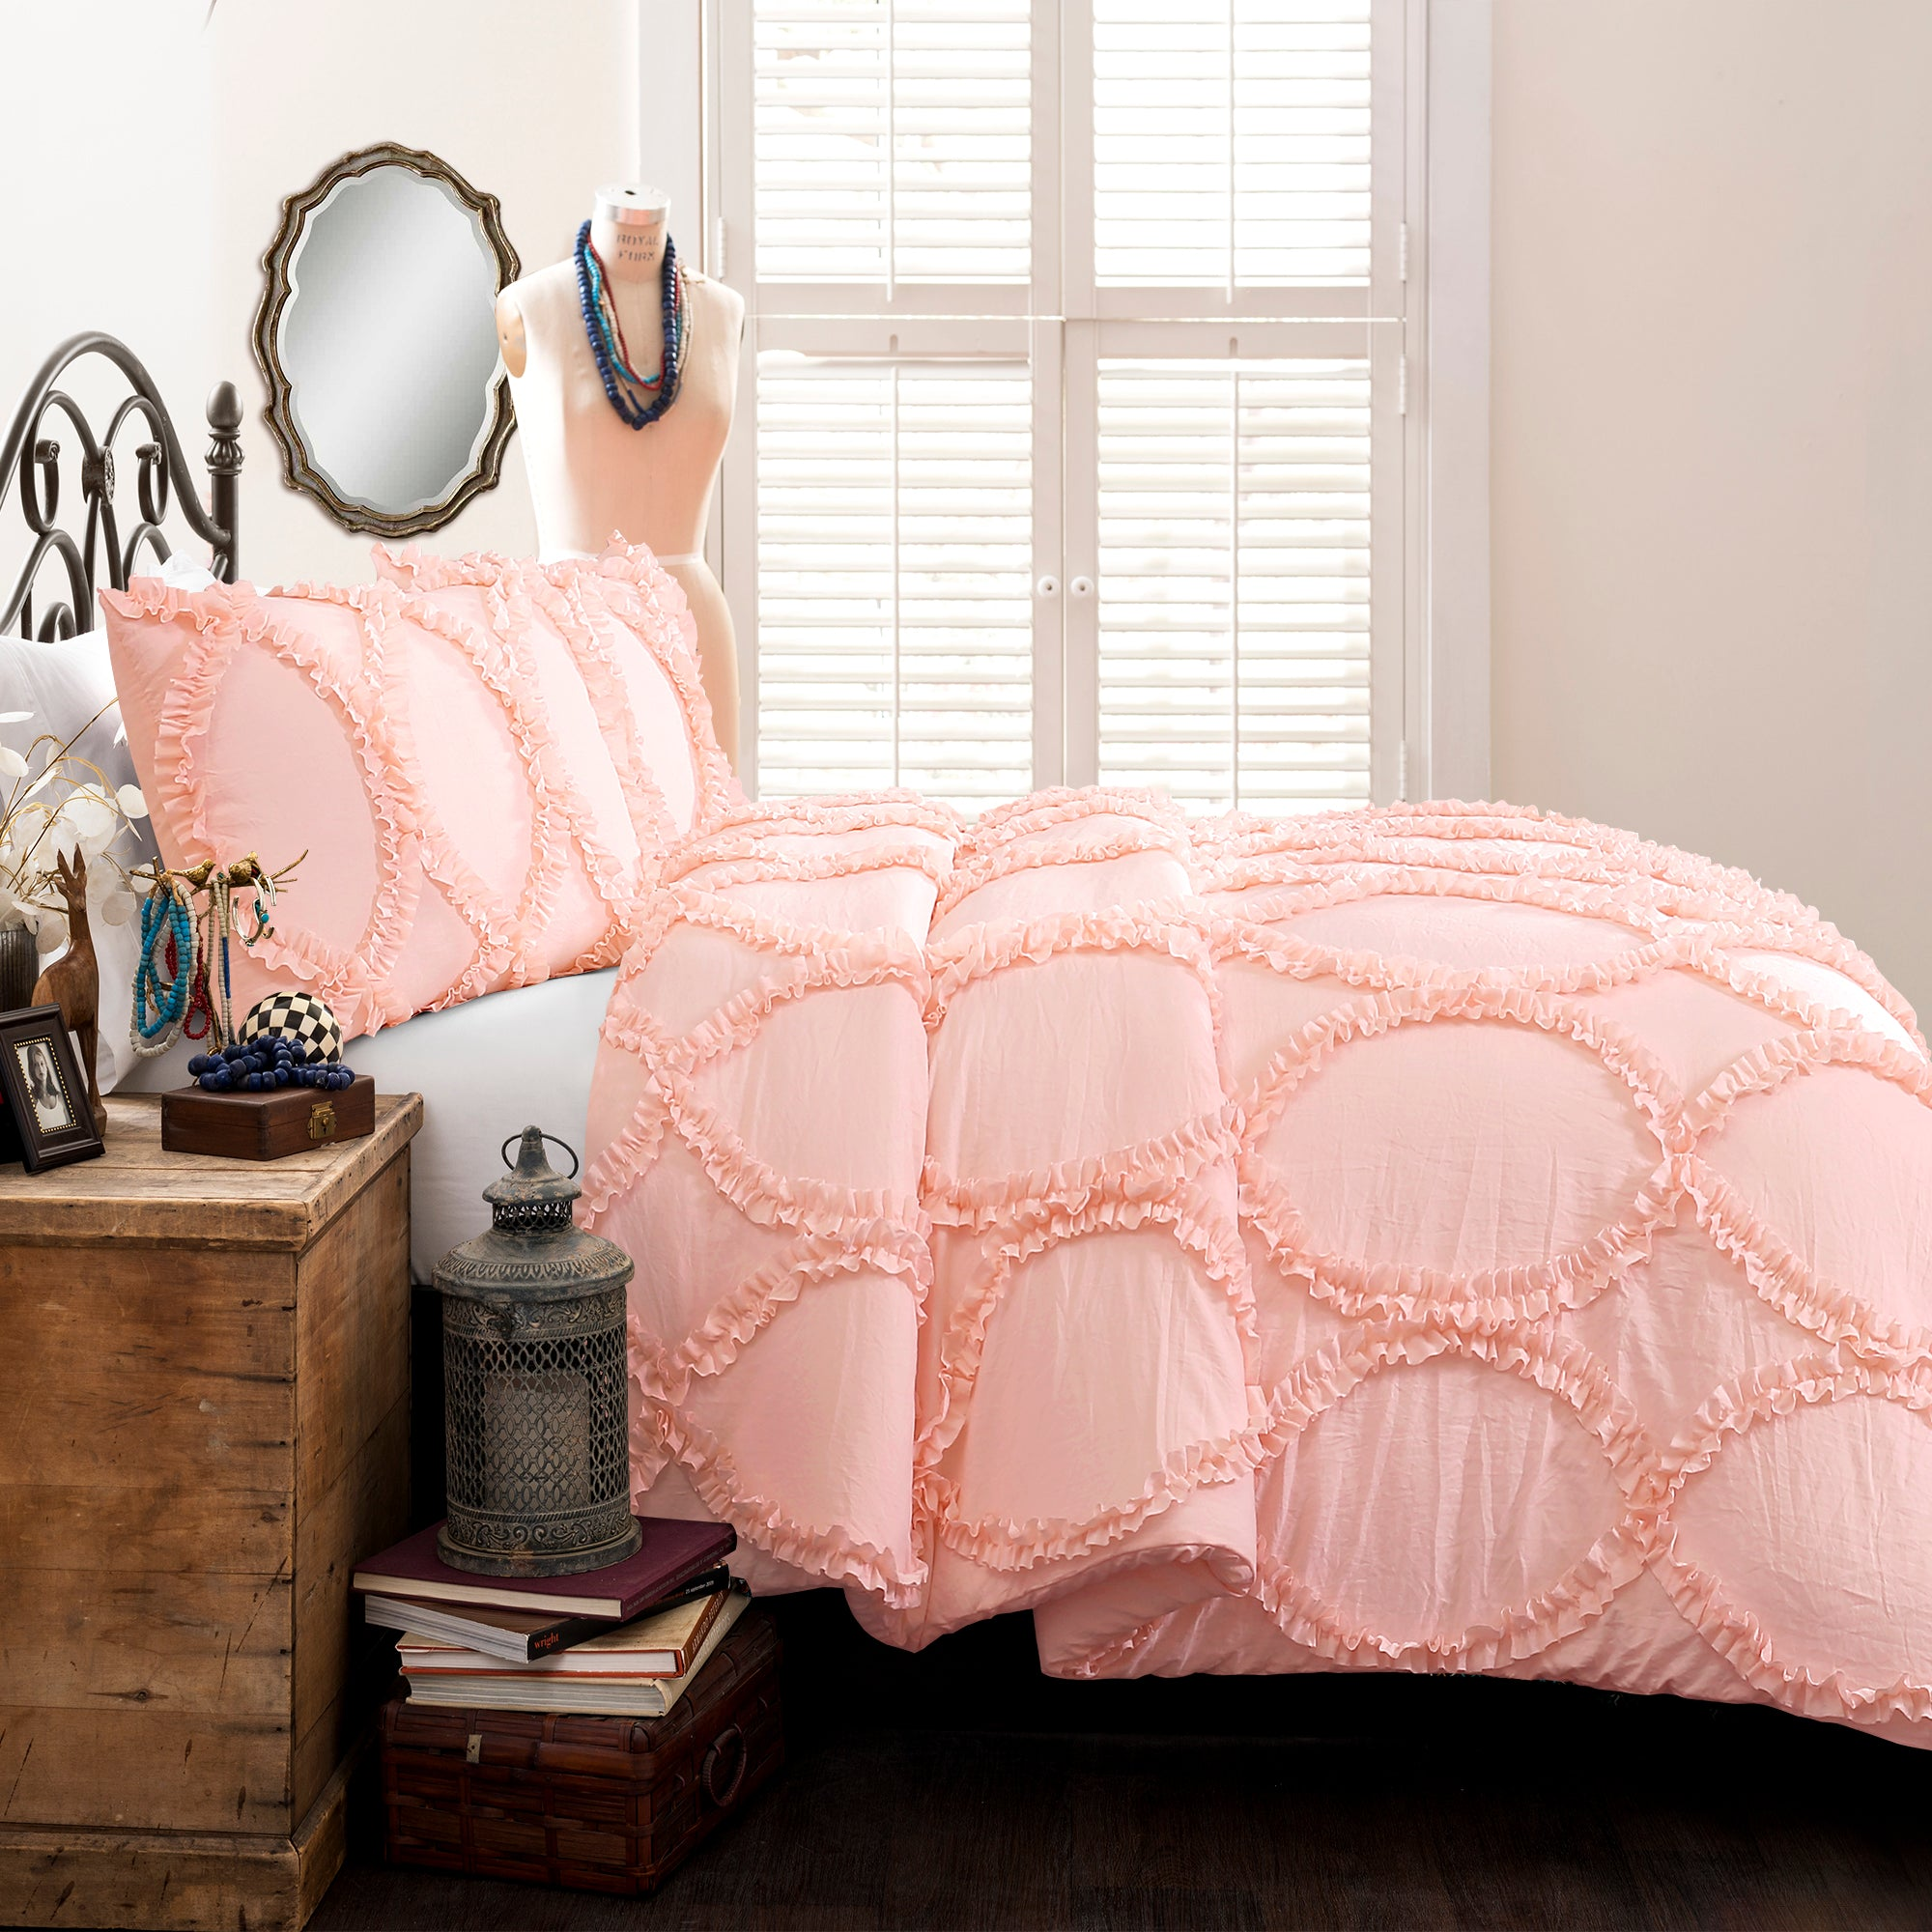 textiles bl be uk and set days at coast piece of bows twin ruffled pc pink full blush king beyond bedding sick white sets sheets by xl size bed amazon ella pacific no bath queen comforter canada sequins